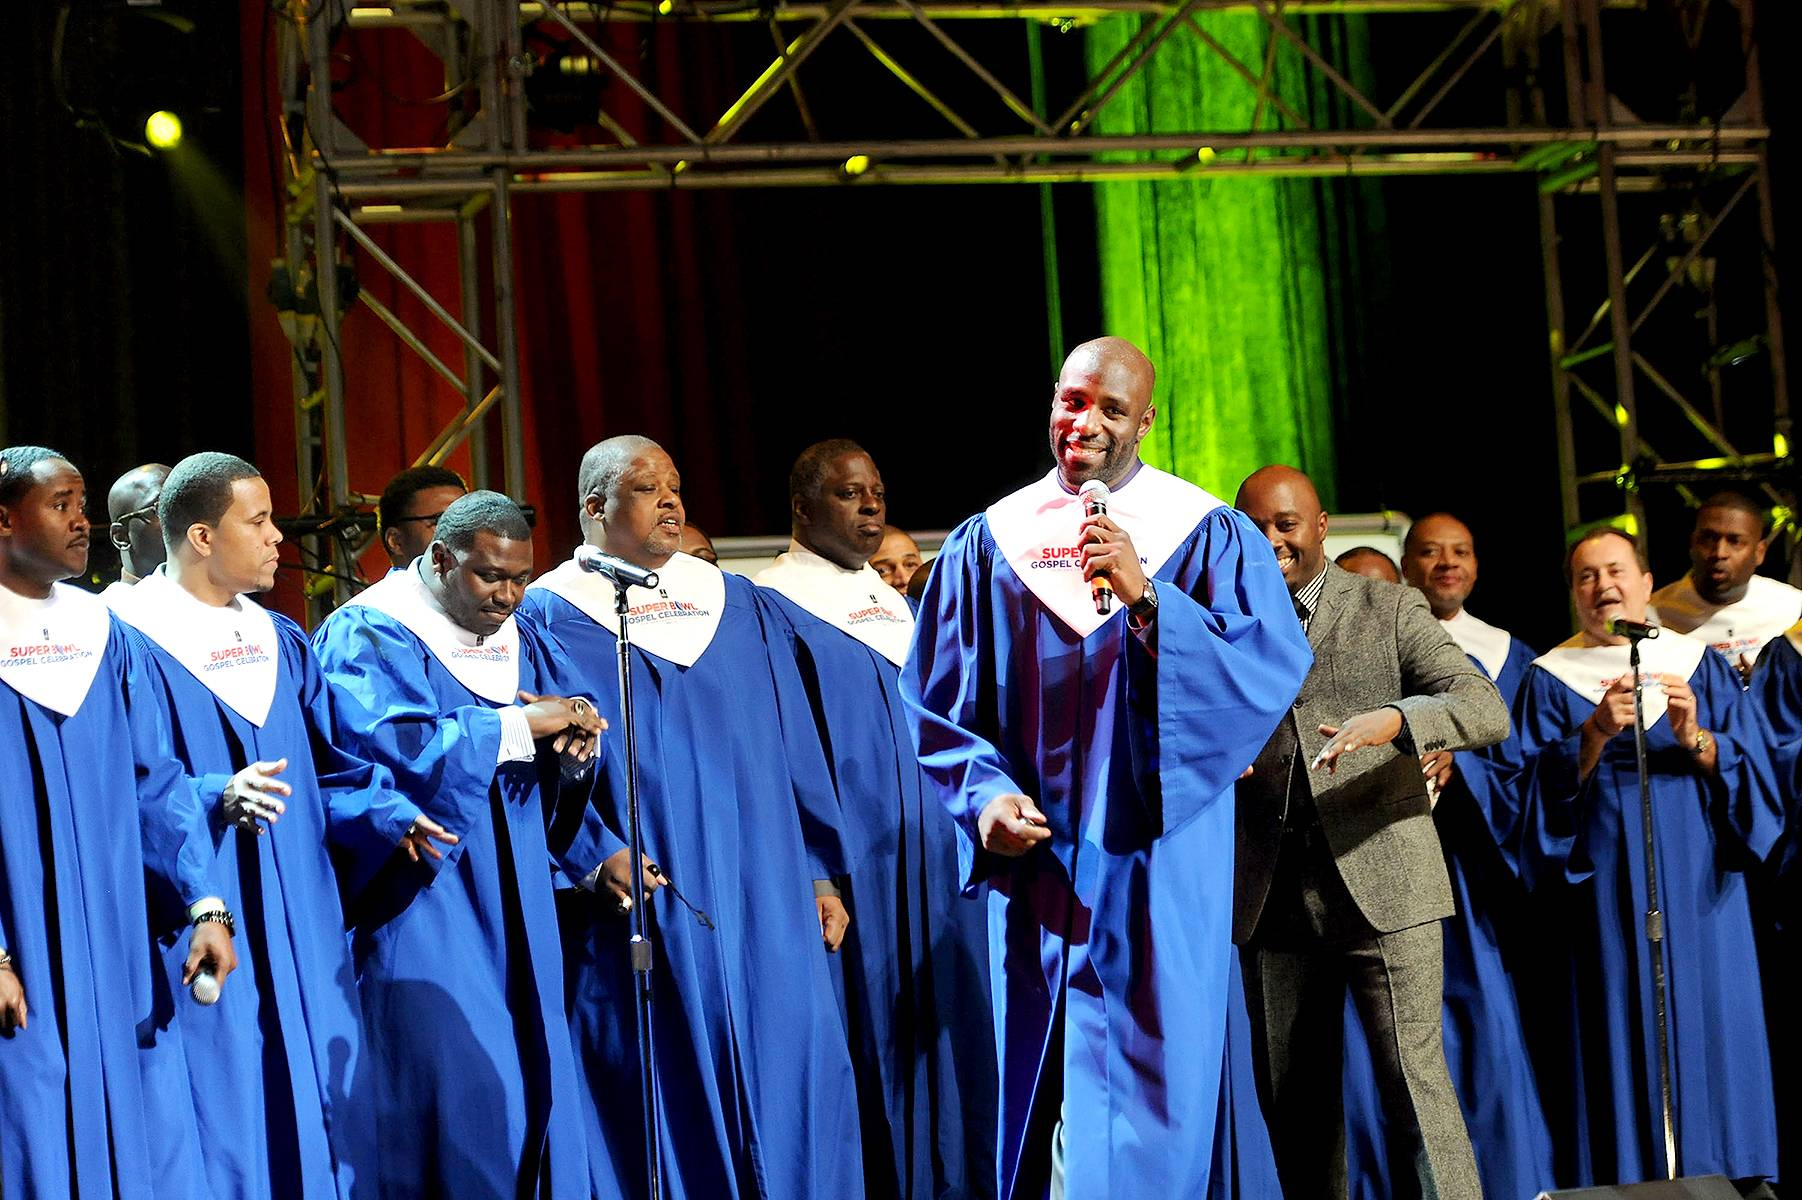 Praise His Name - The NFL Players Choir performs at the Super Bowl Gospel Celebration2012at Clowes Memorial Hall of Butler University in Indianapolis. (Photo: Rick Diamond/Getty Images for Super Bowl)